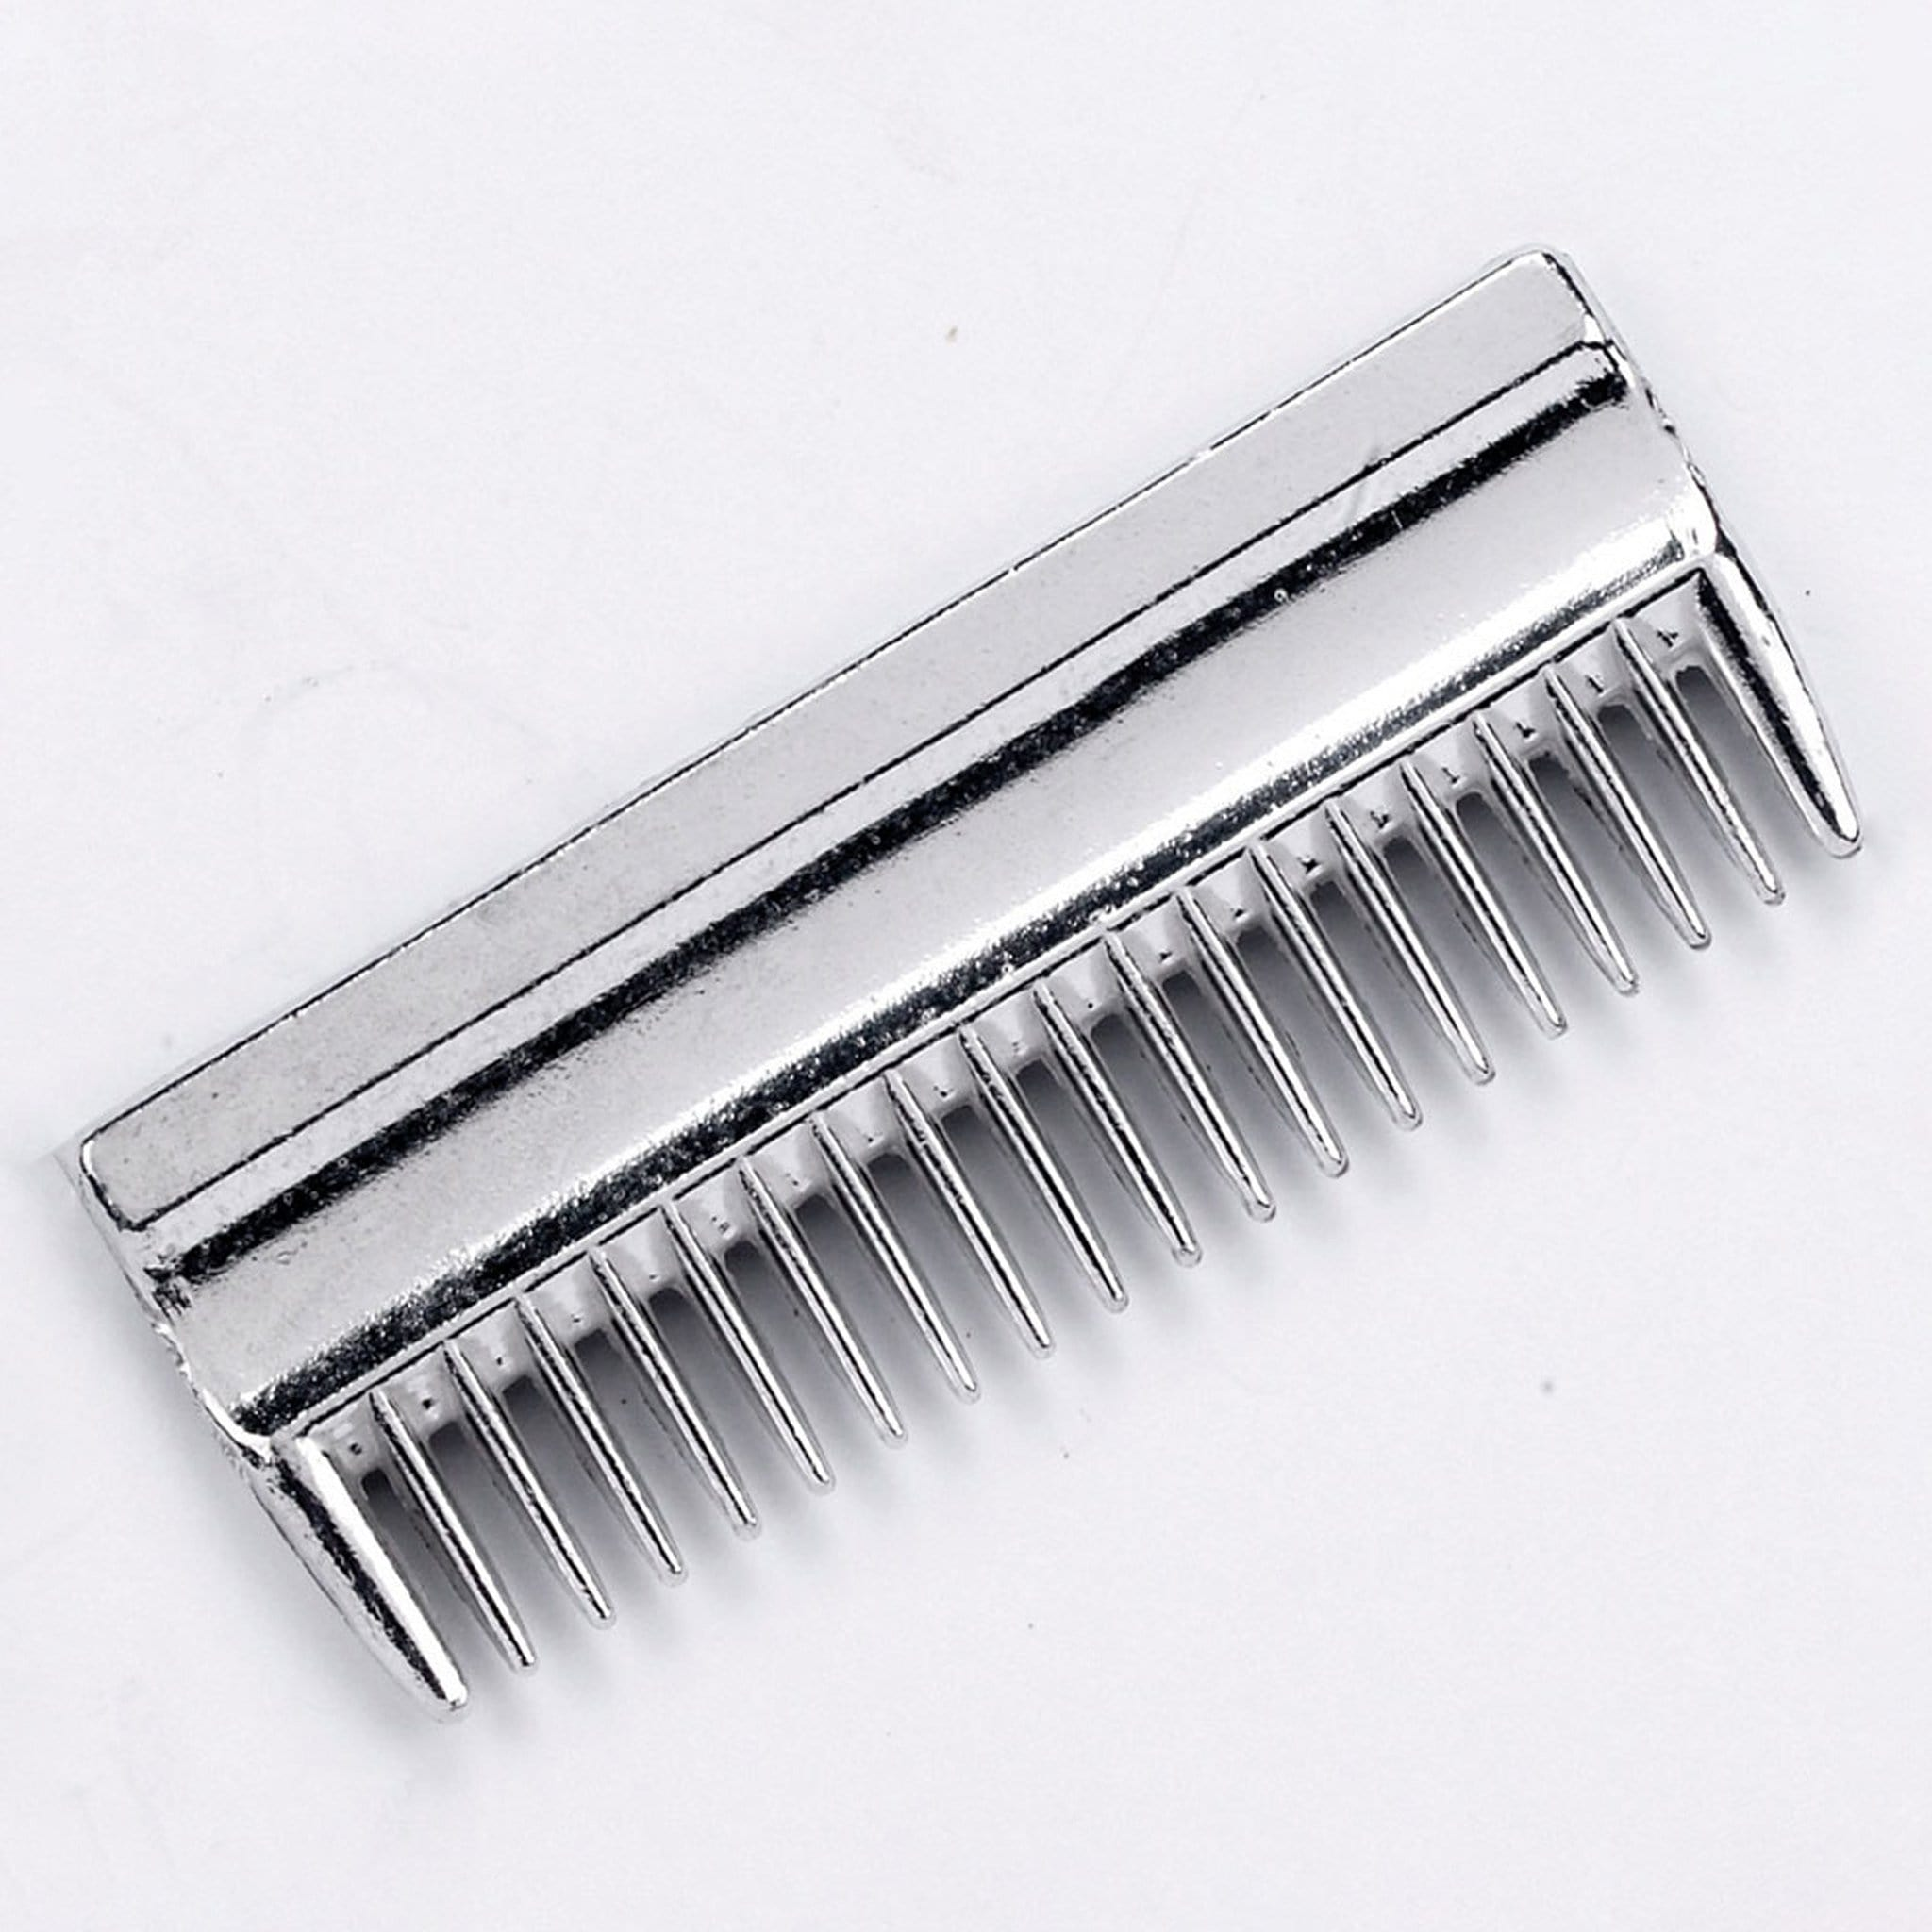 Lincoln Tail Comb 5416